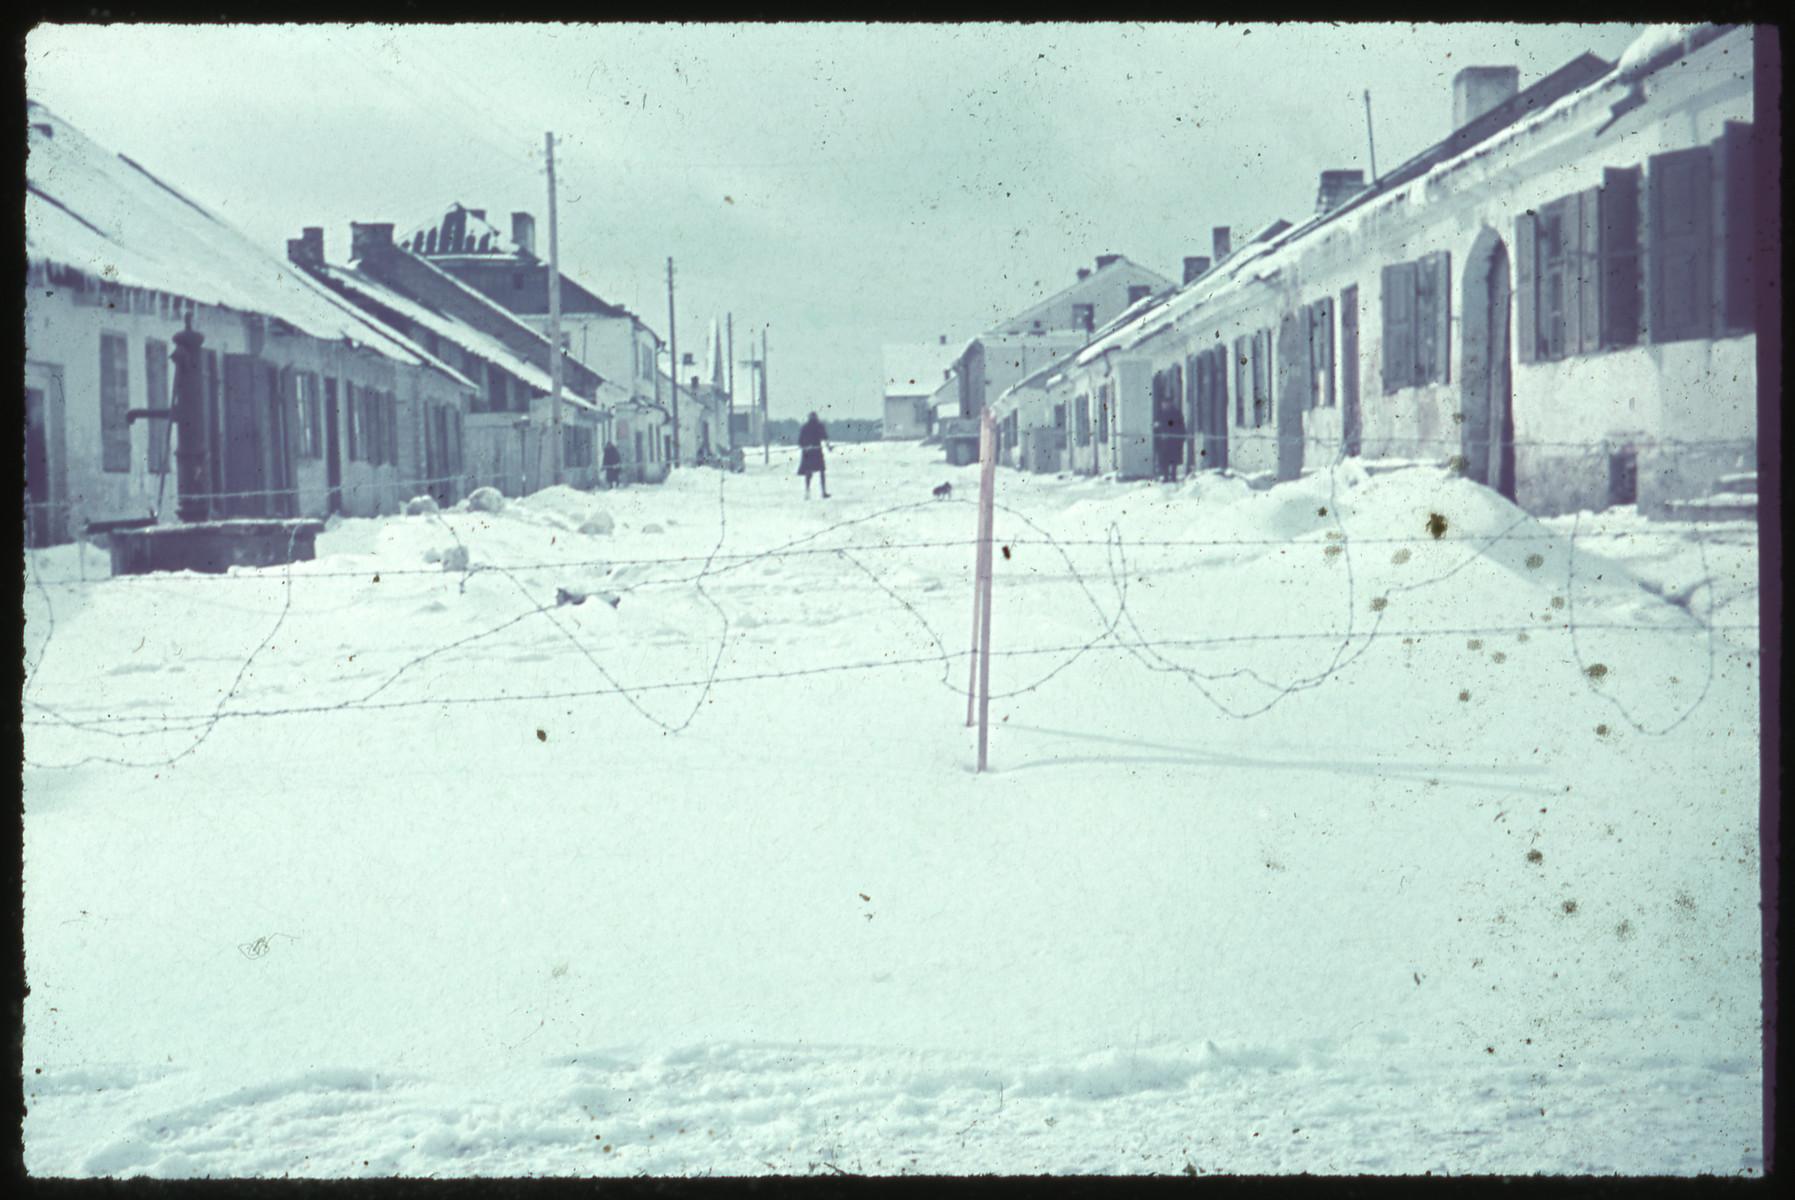 View of a nearly deserted snow covered street [probably Targowa Street] in Kozienice.